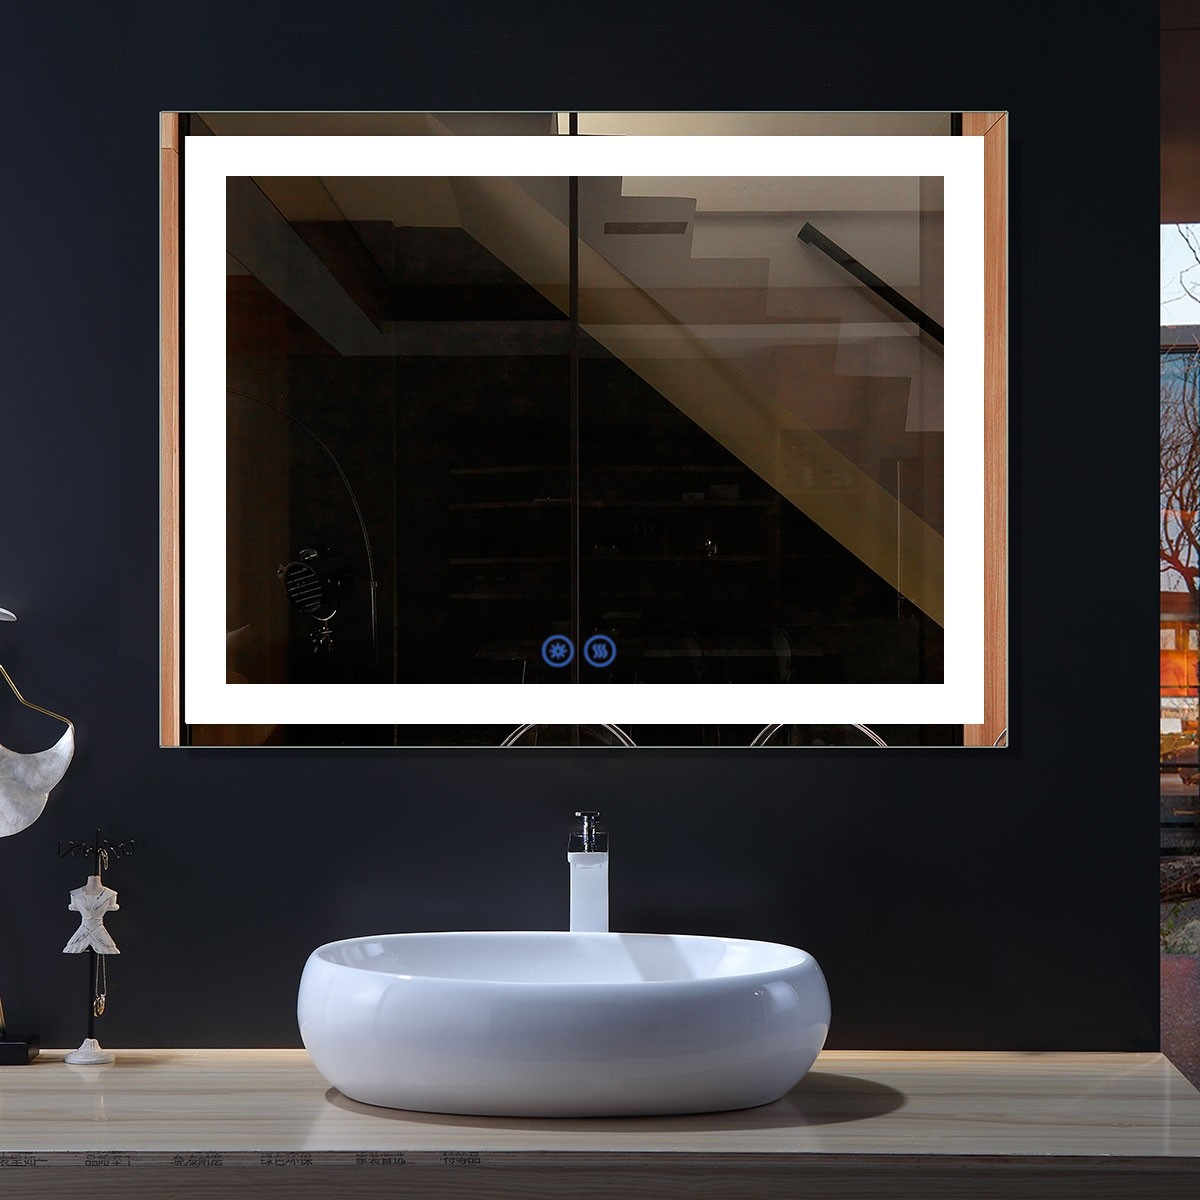 DECORAPORT 48 x 36 Inch LED Bathroom Mirror with Touch Button, Anti Fog, Dimmable, Bluetooth Speakers, Vertical & Horizontal Mount (CT071-4836)